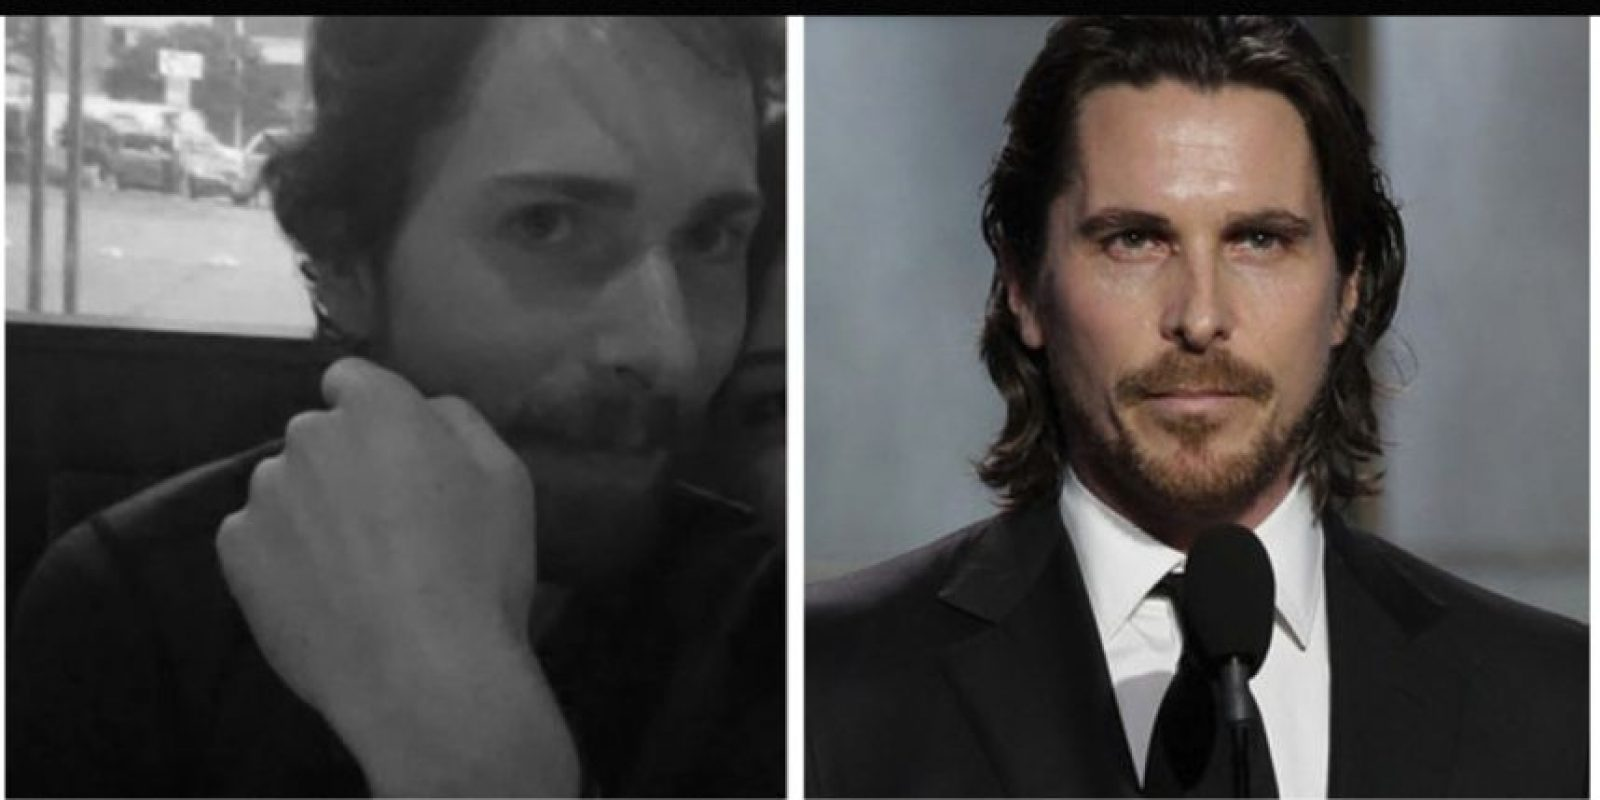 Igual a Christian Bale Foto: Reddit/Getty